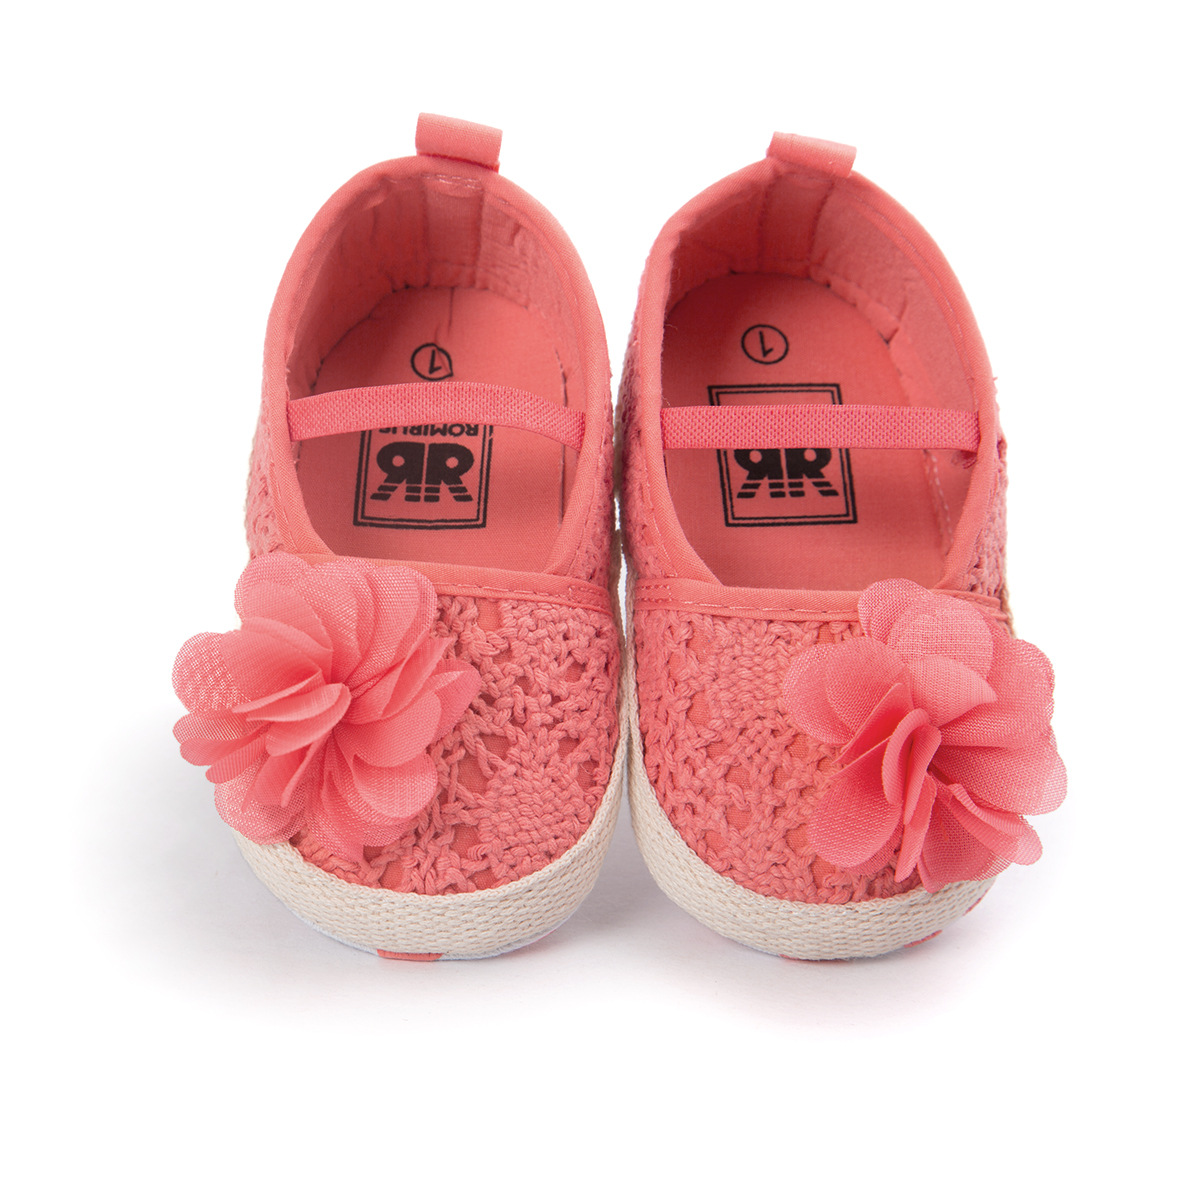 2019 Fashion Sweet Branded Pink Girl Baby Shoes First Walker Infant Kids Flower Chaussures Girls Crochet Knit Toddlers Soft Sole Bebe Sapatos Be Friendly In Use Baby Shoes First Walkers